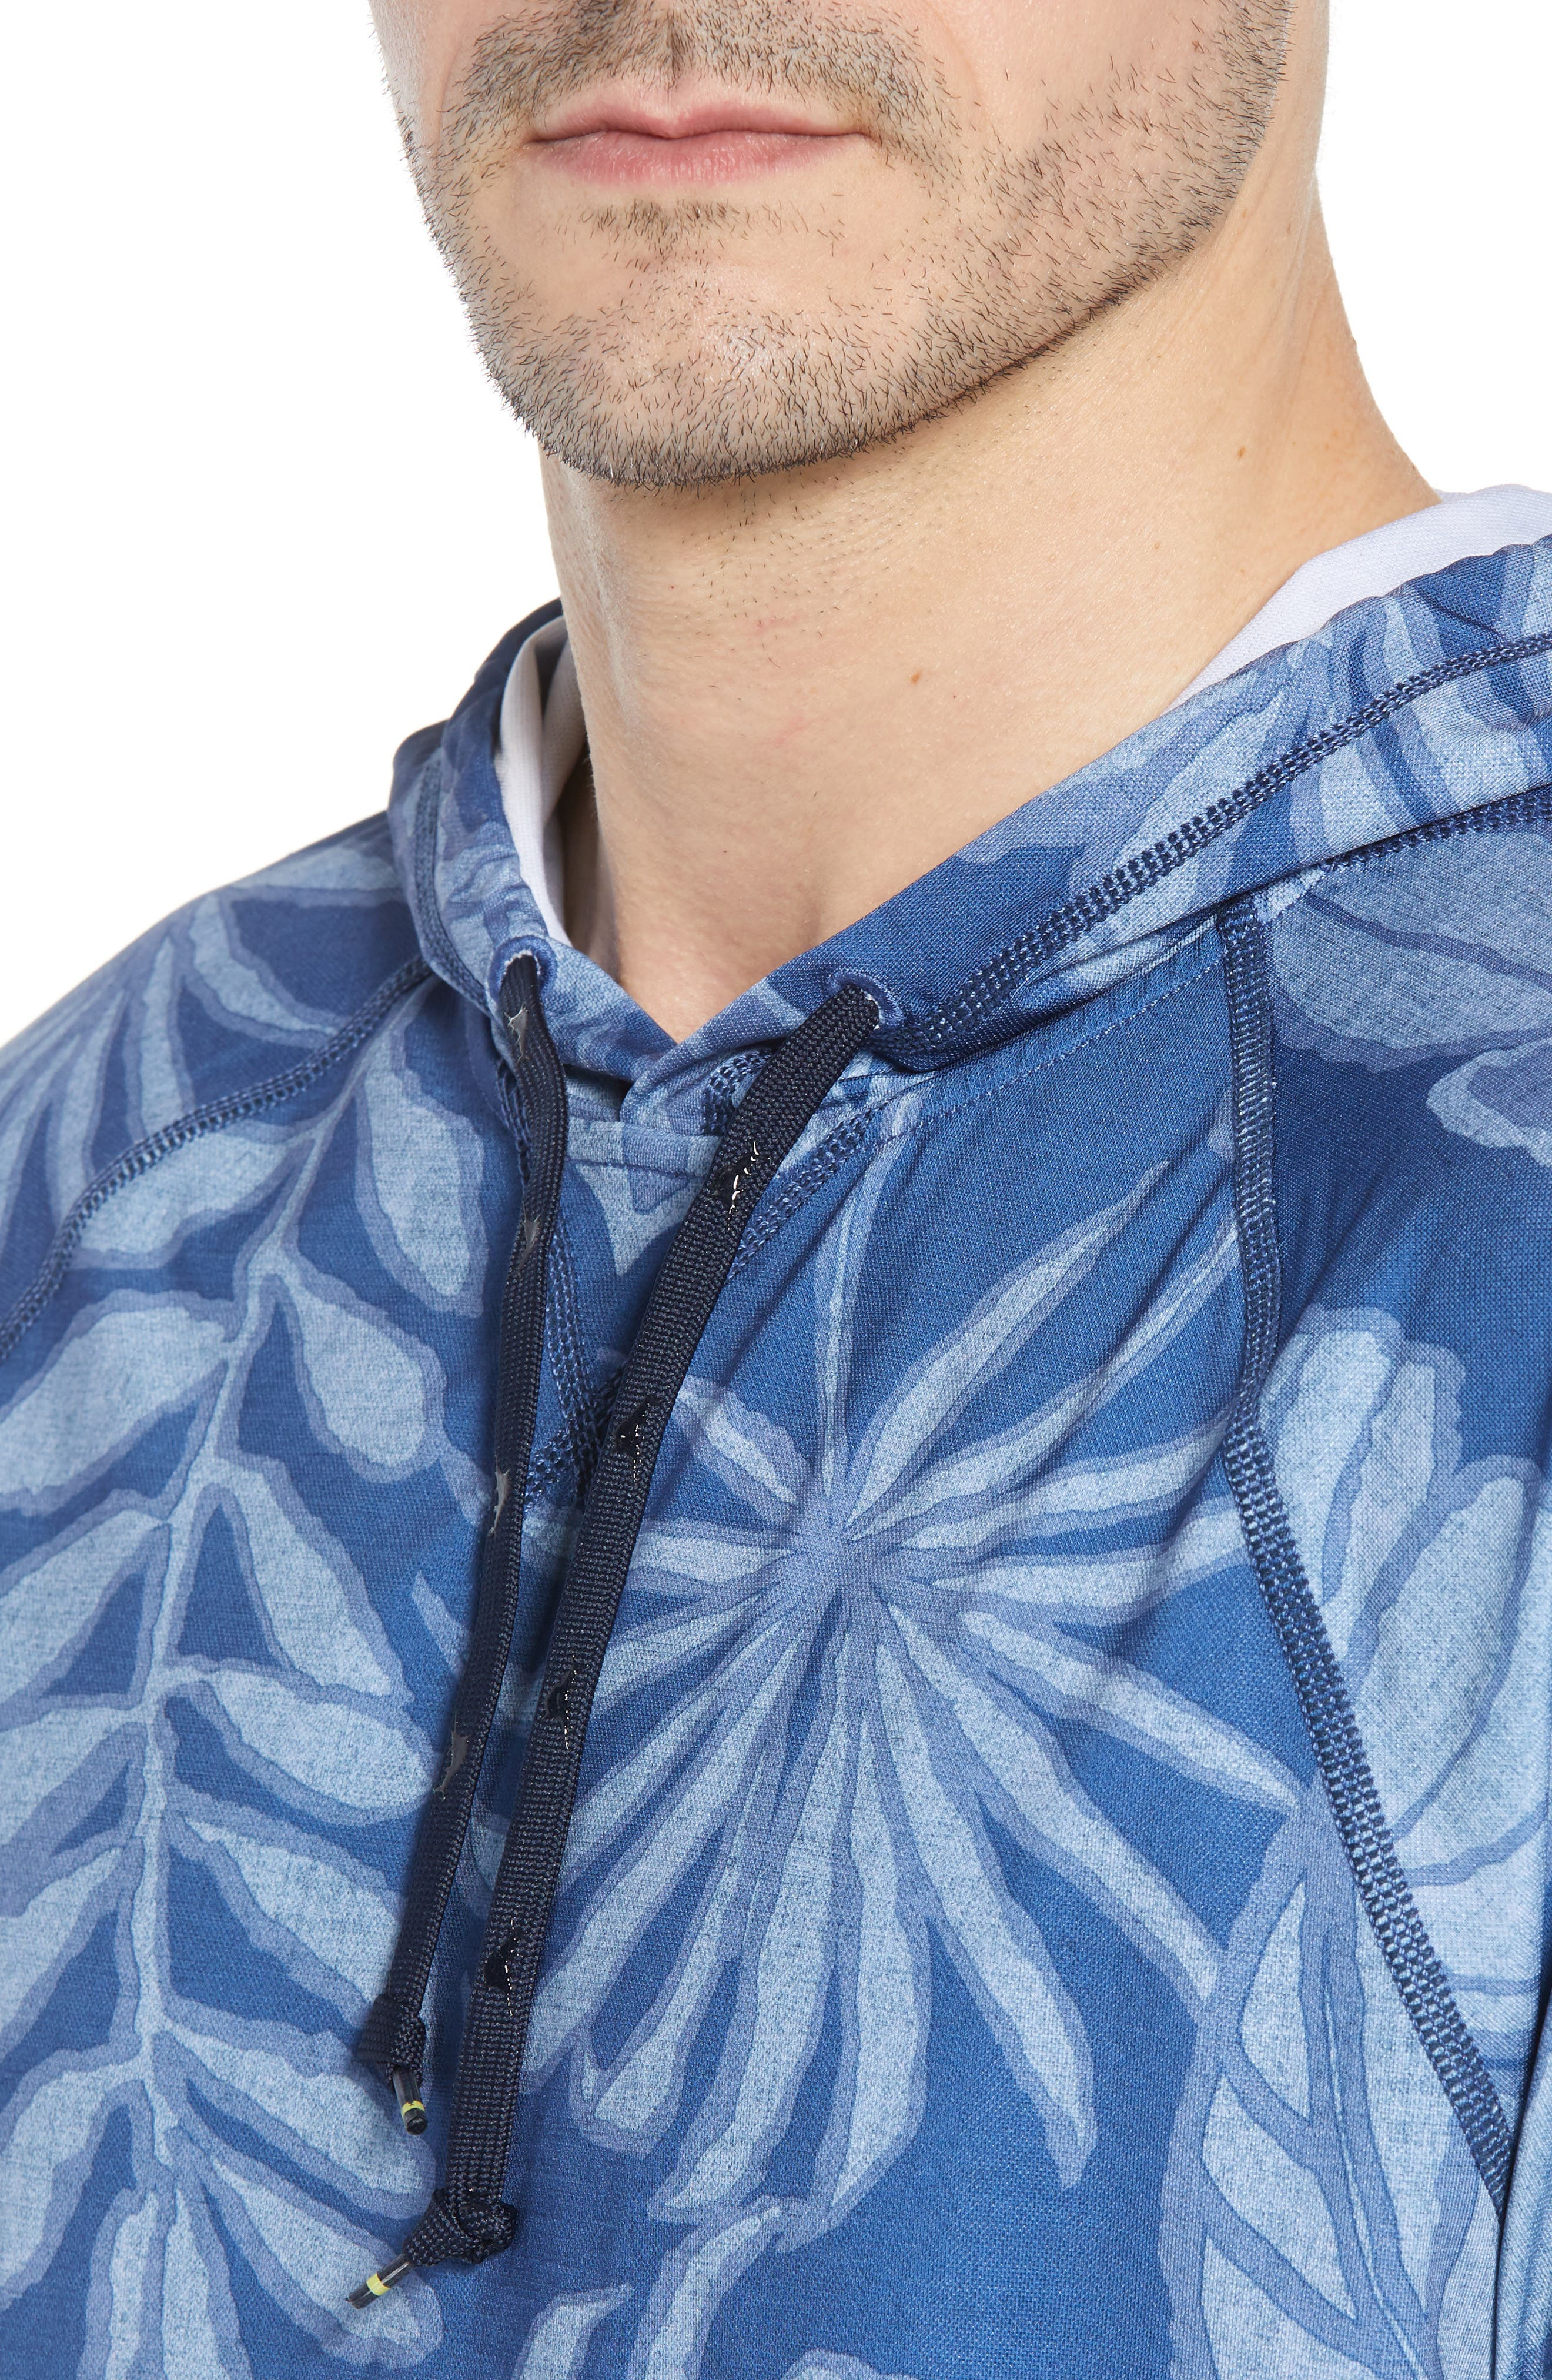 Playa Mambo Tech Hoodie,                             Alternate thumbnail 4, color,                             ATLANTIC